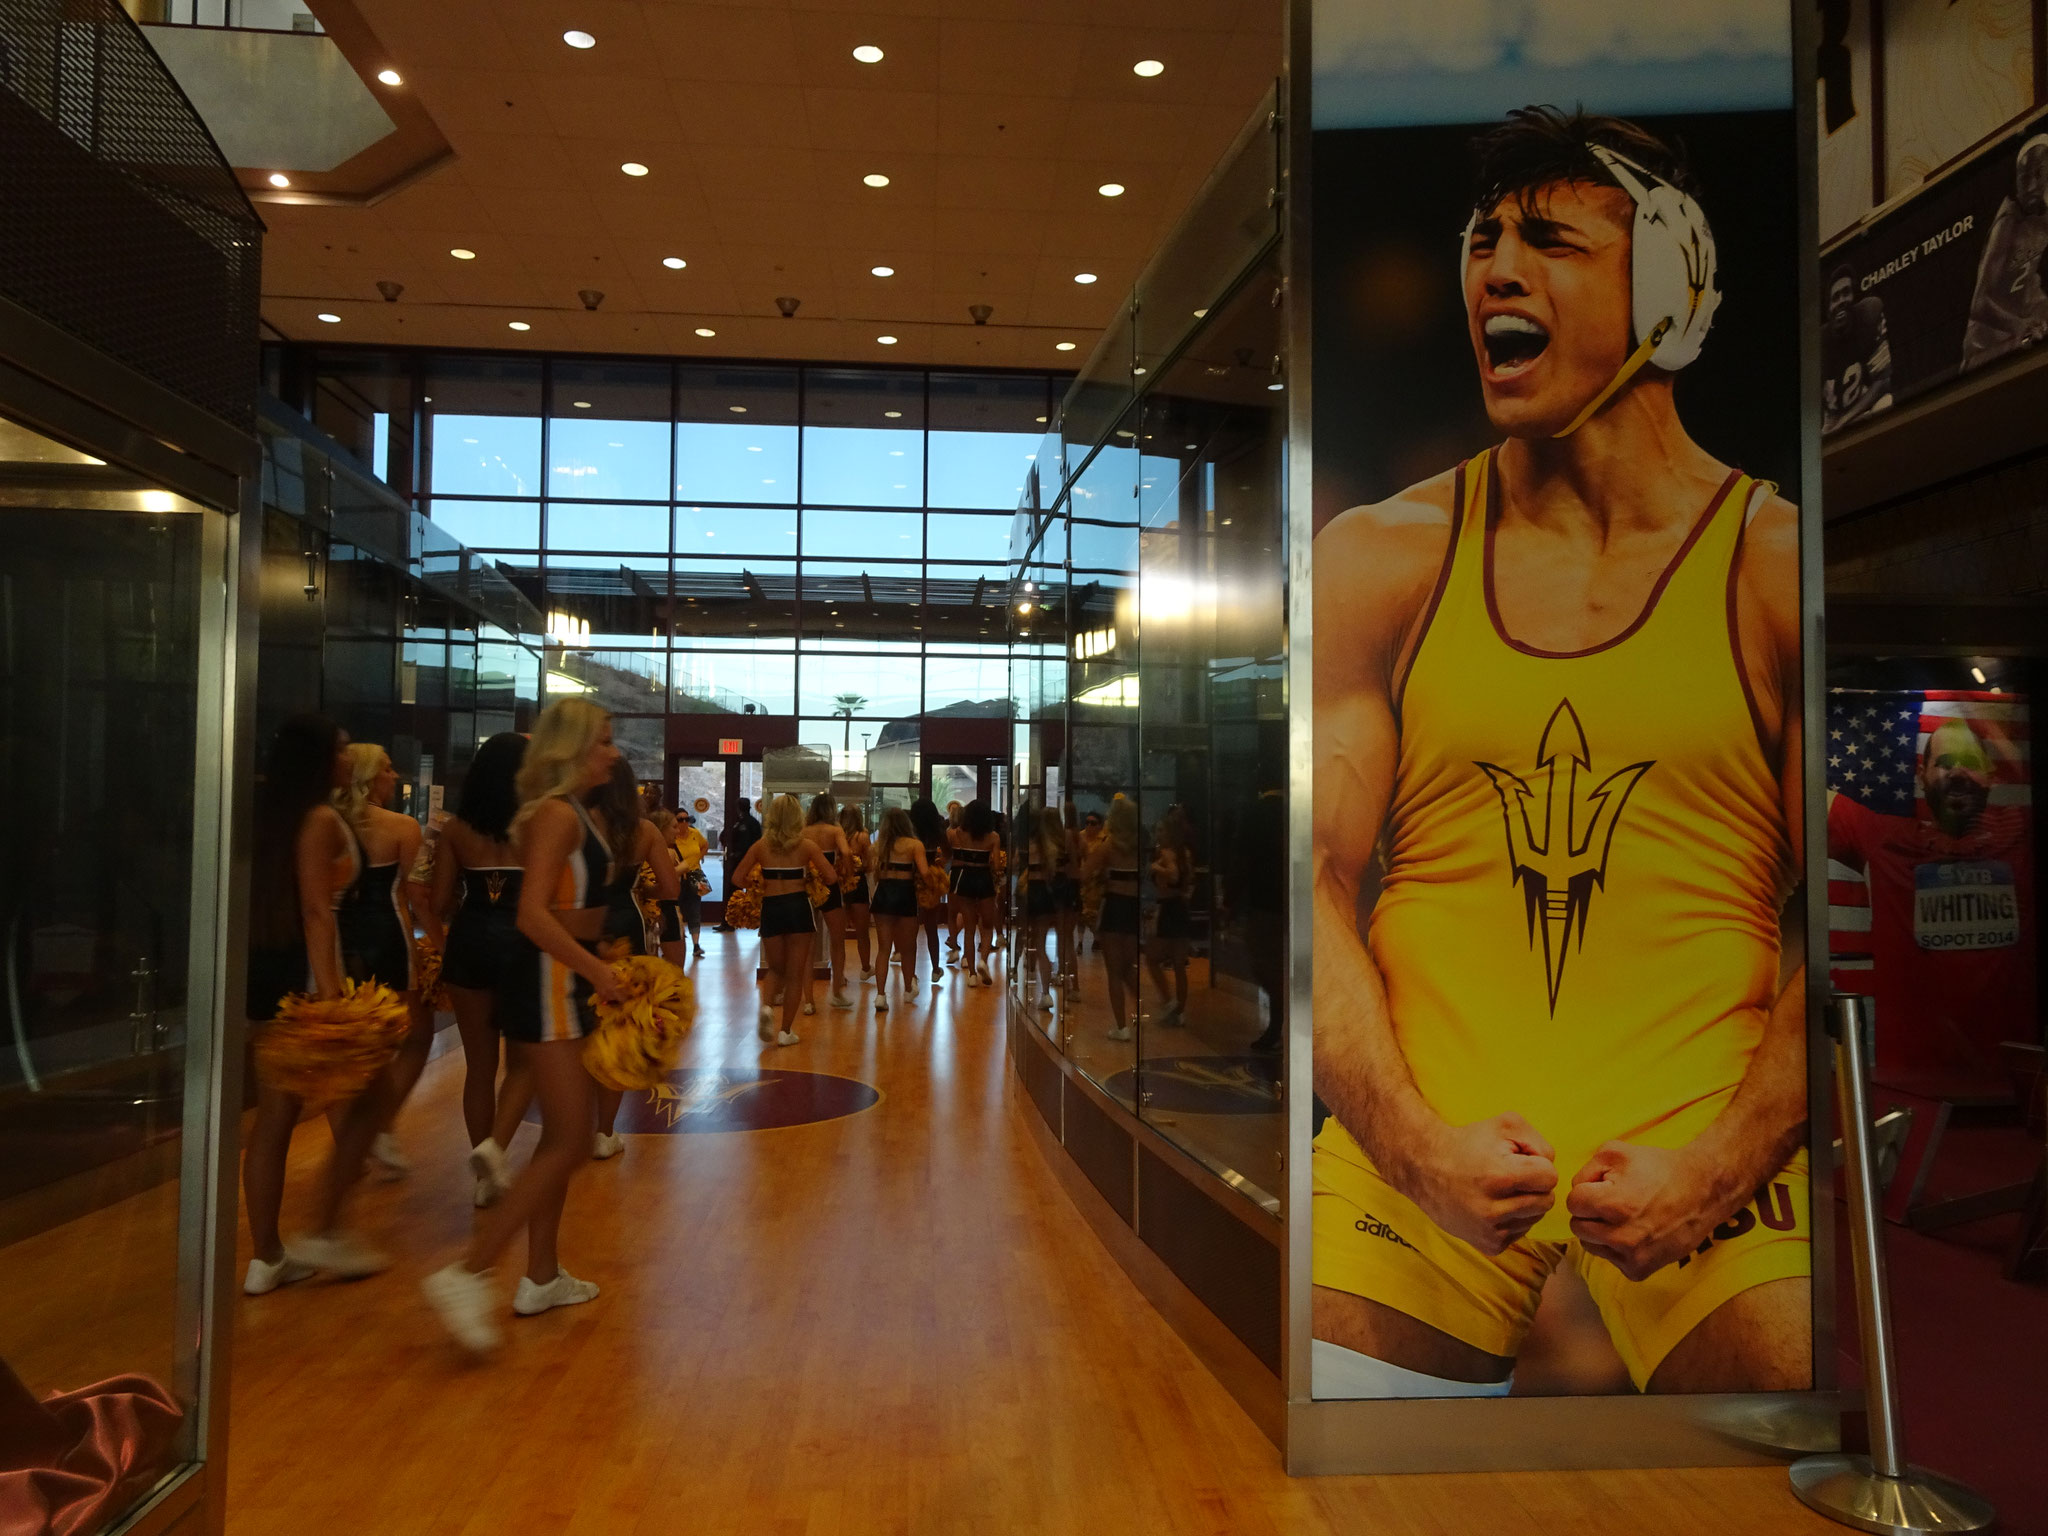 Hall of Fame Sun Devils Arizona State (2018/19)